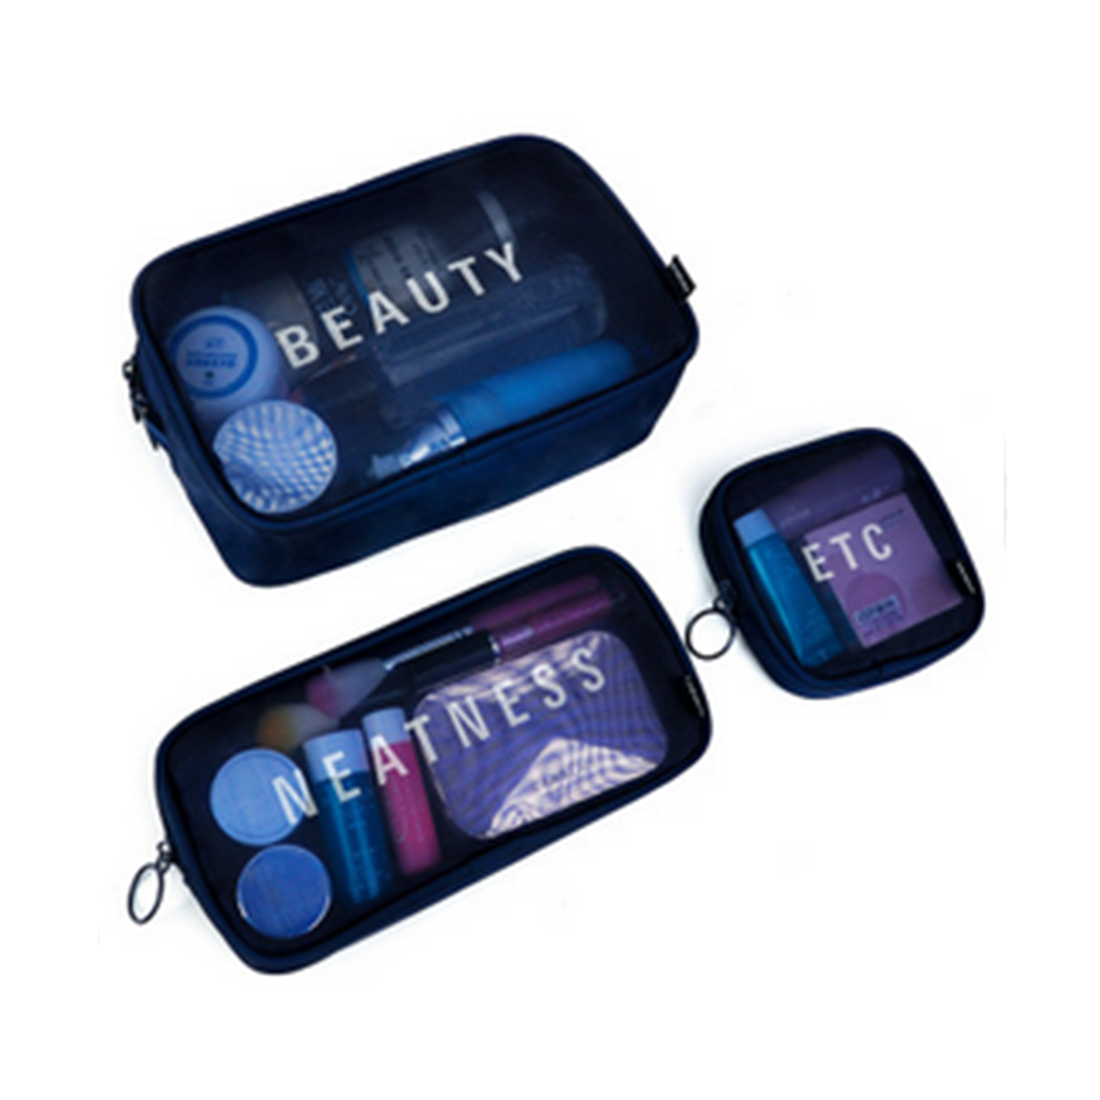 Aresland Transparent Waterproof Cosmetic Bag Clear Travel Women Makeup Storage Pounch Bags LadIes Make Up Toiletry Bag Black